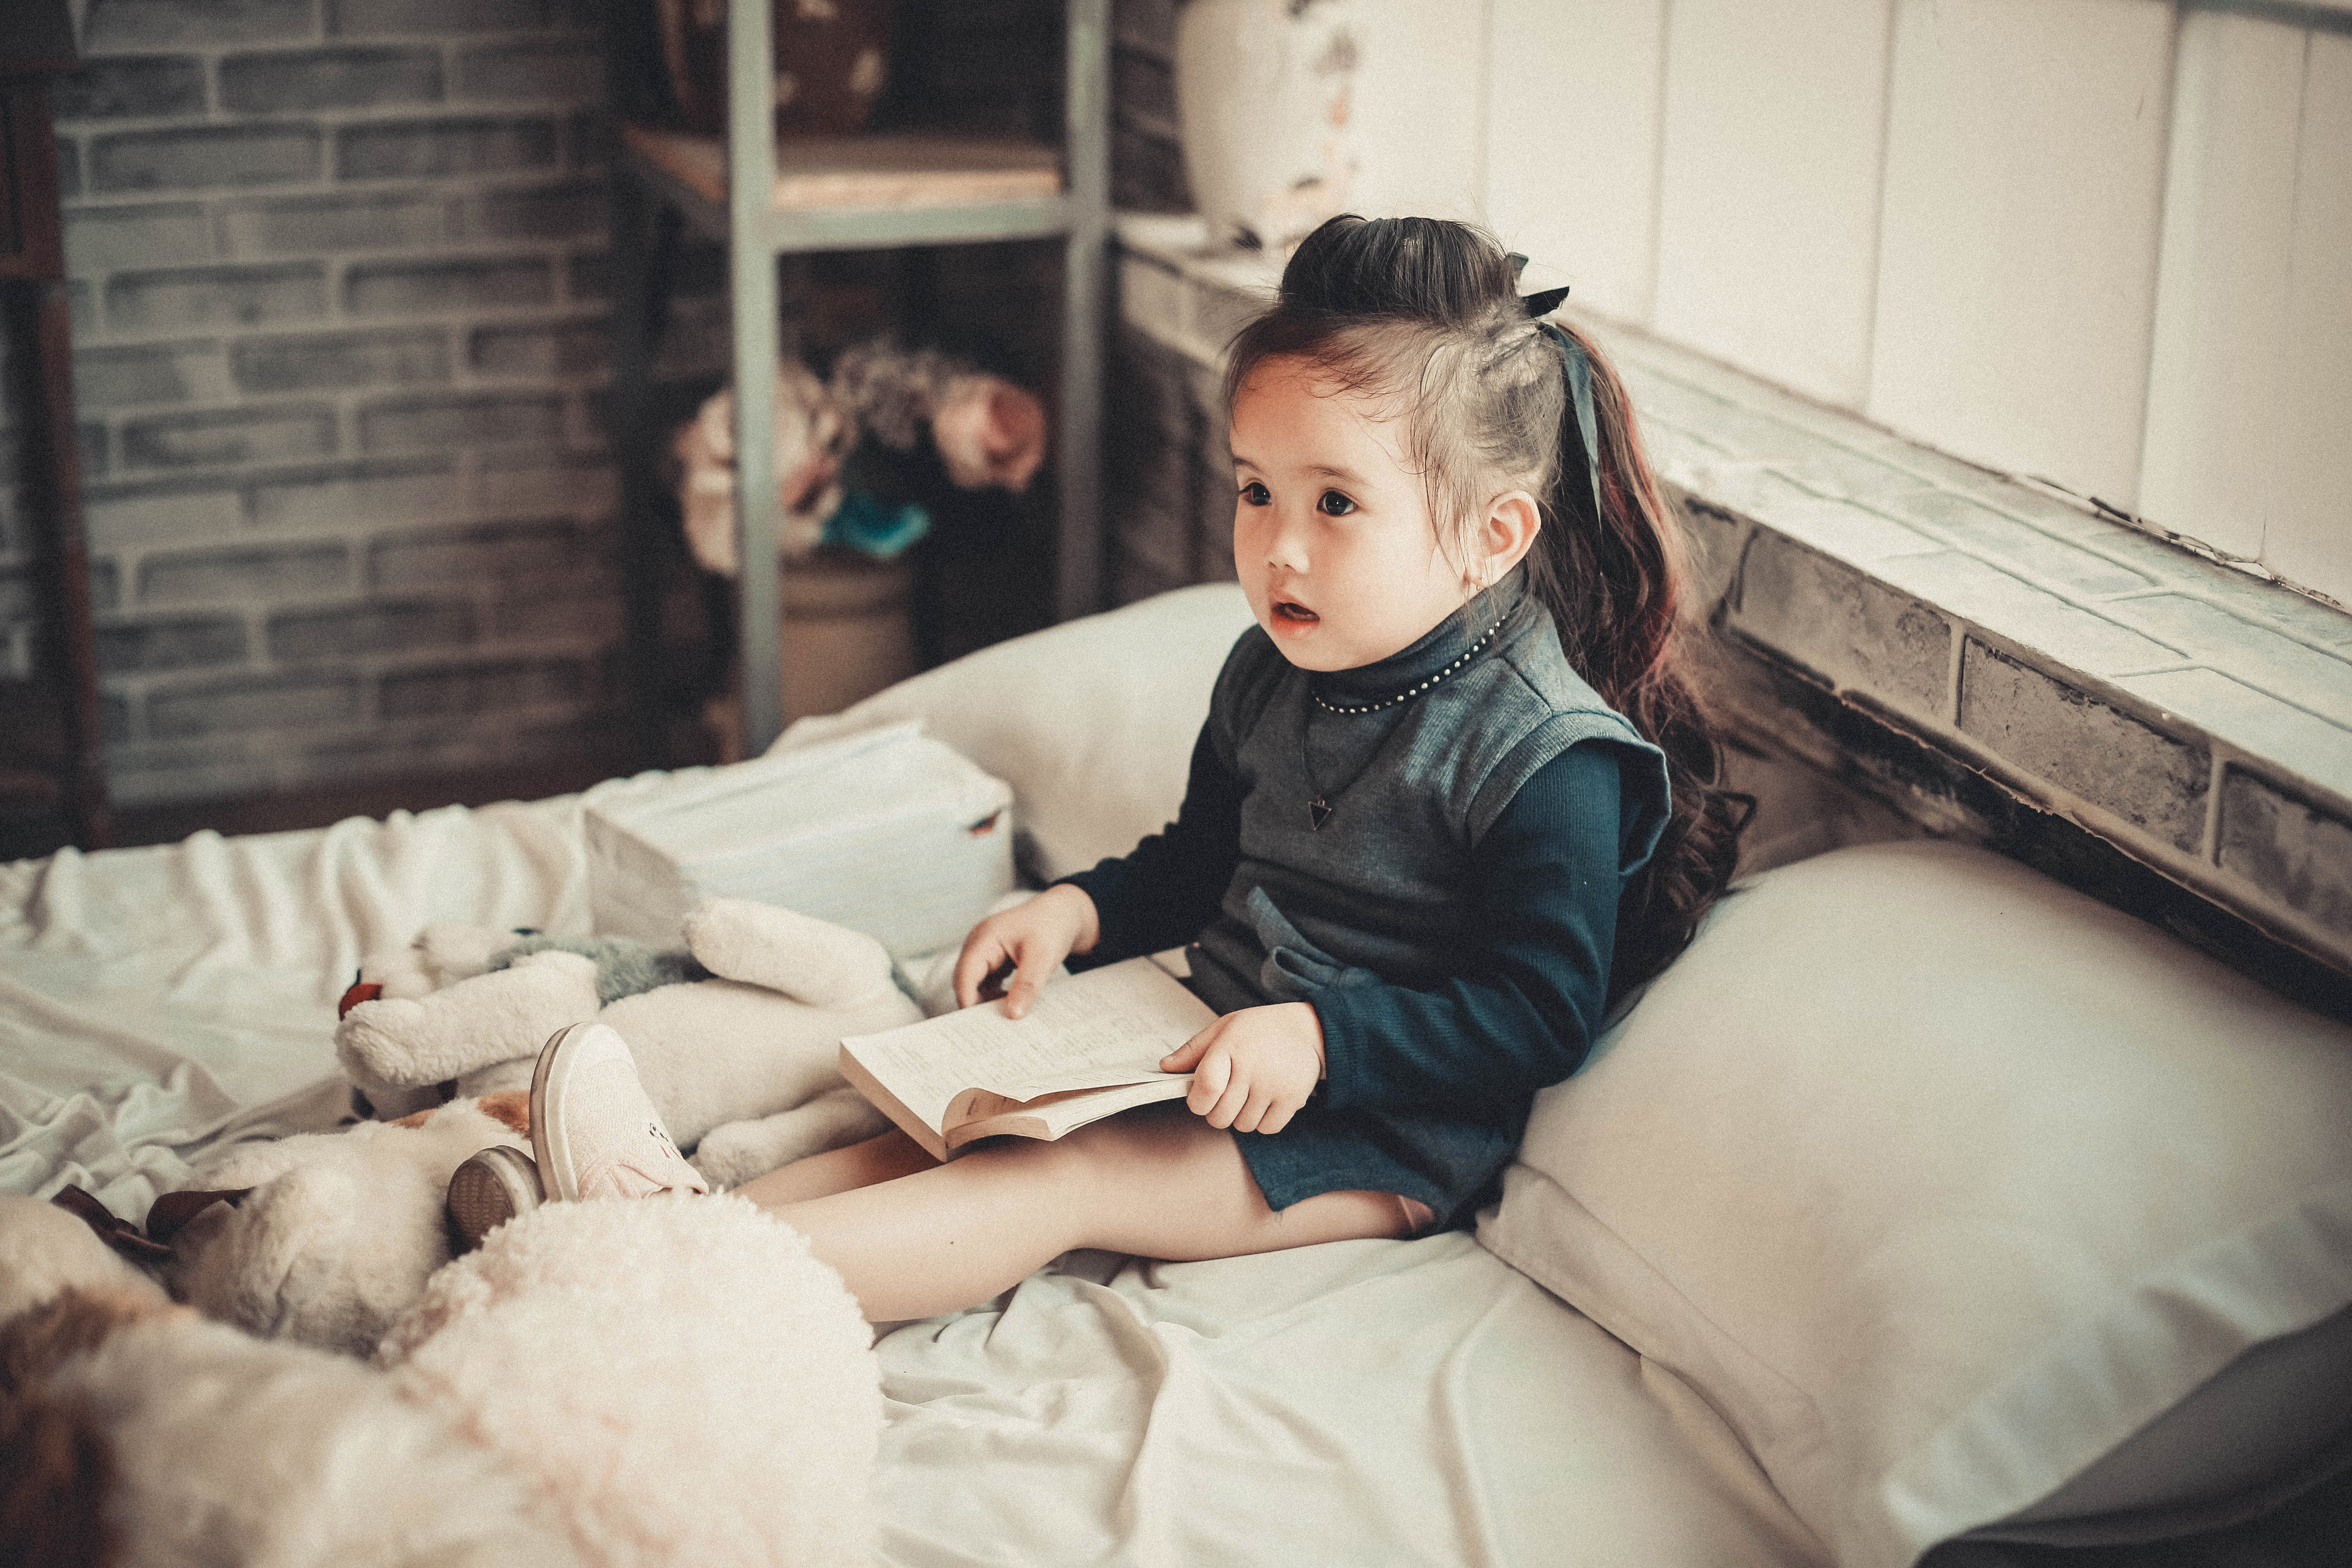 A little girl sitting upright in bed reading like an adult.